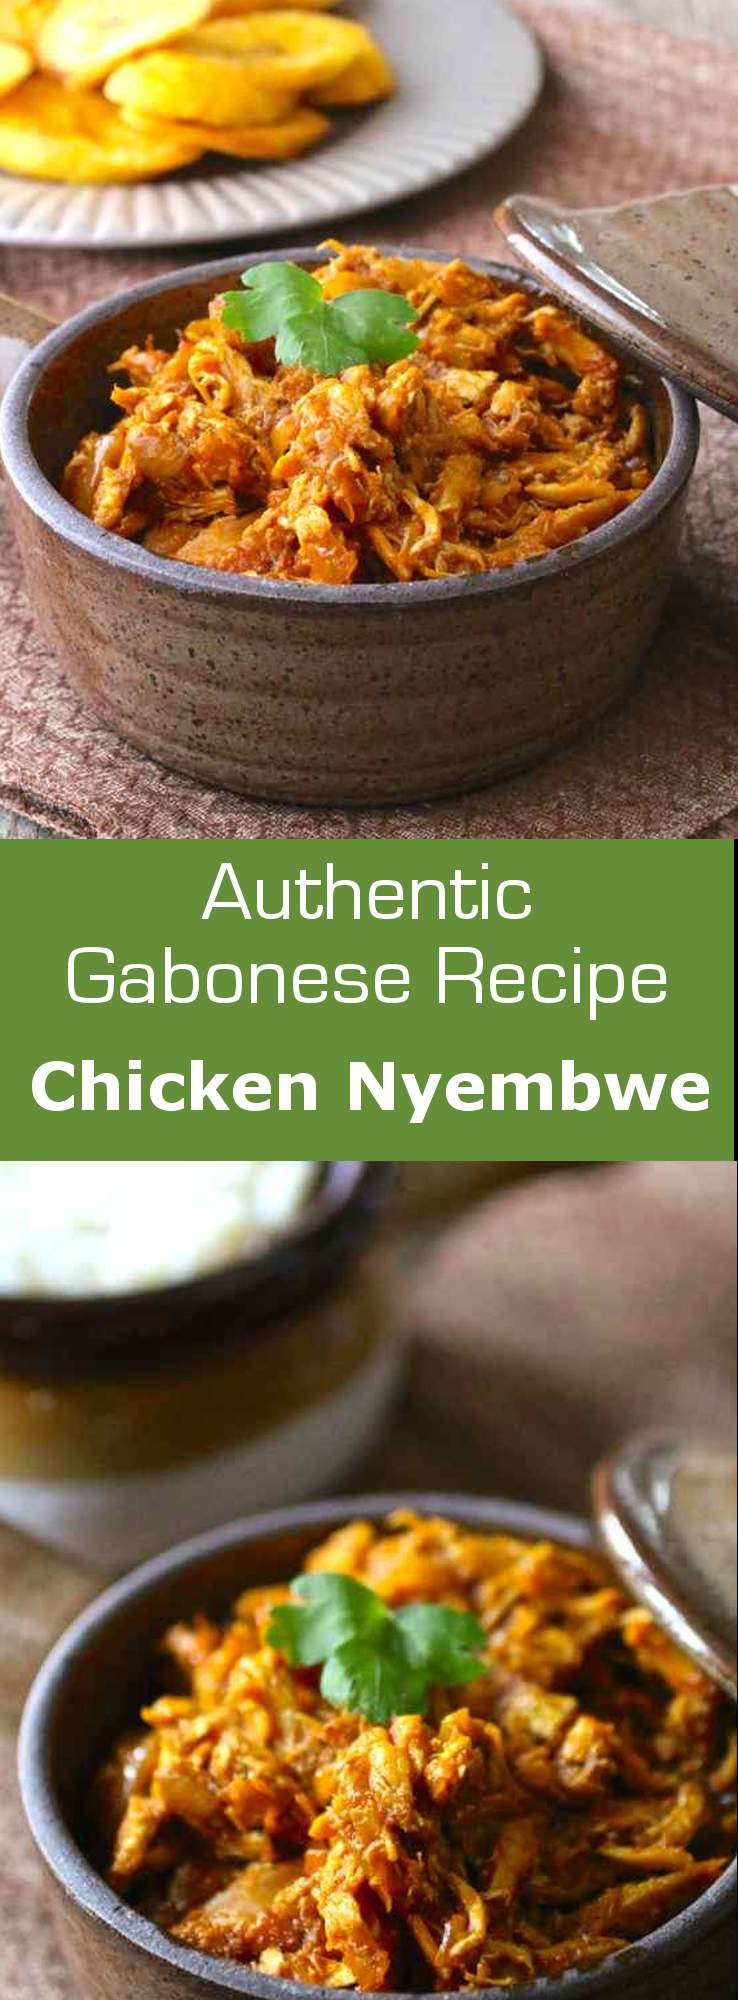 Nyembwe chicken is a traditional African recipe from Gabon which consists in smoked chicken cooked in sauce graine or palm nut butter. #gabon #africa #196flavors